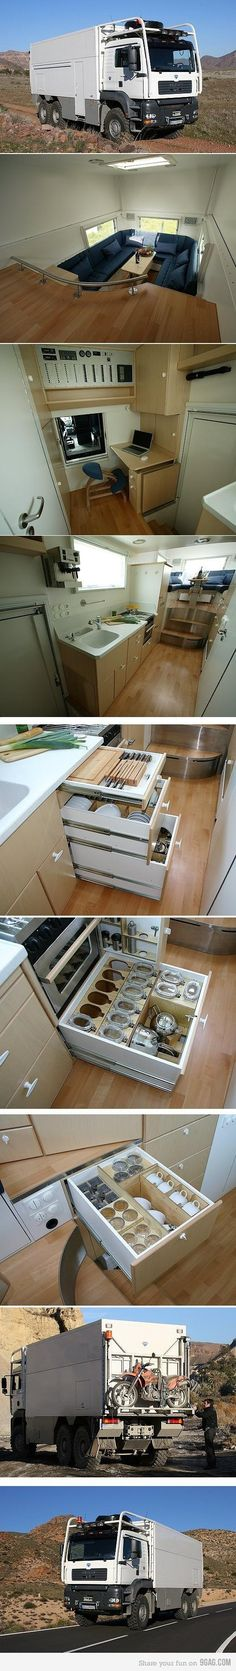 camper drawer storage!! <---- f that, I want this truck! That's too damn awesome!